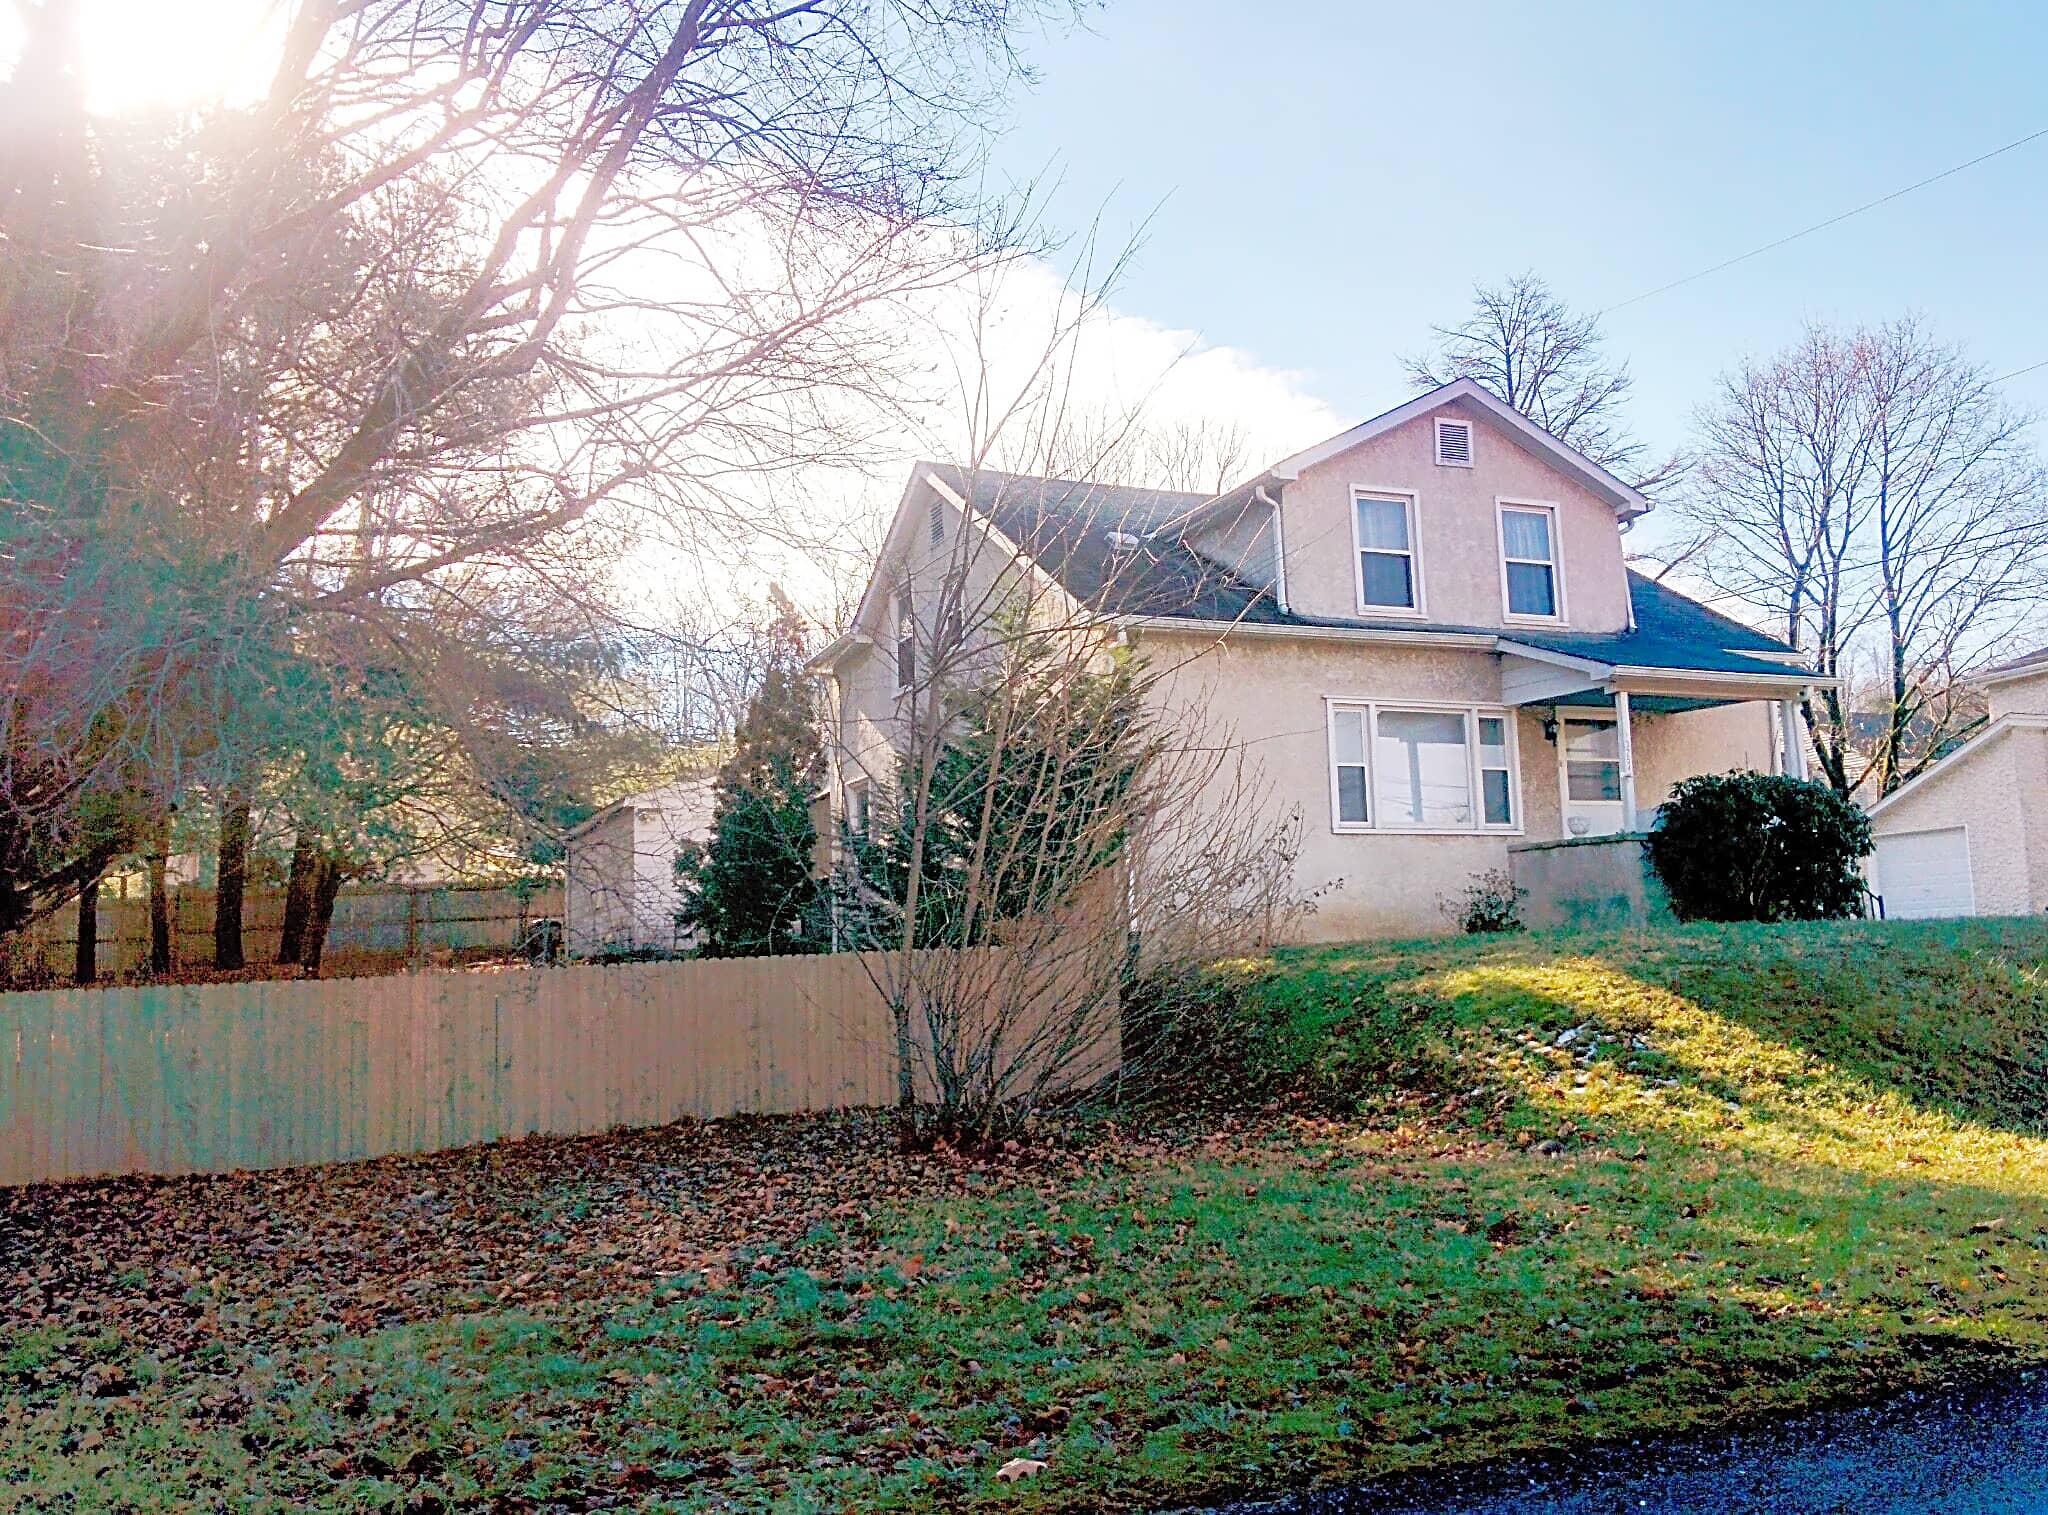 House for Rent in Downingtown